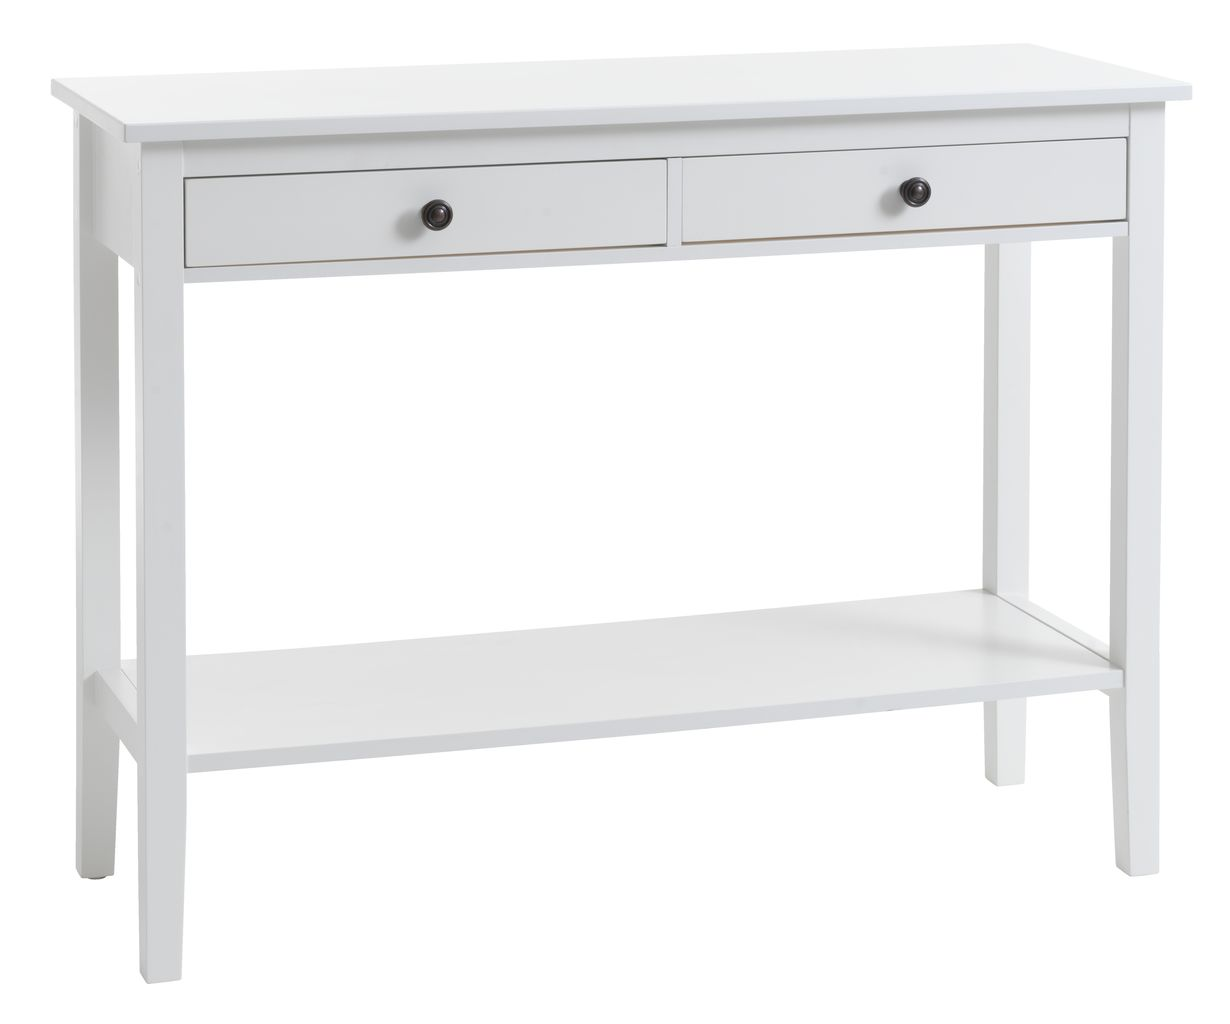 Console Table Nordby 40x110 White Jysk